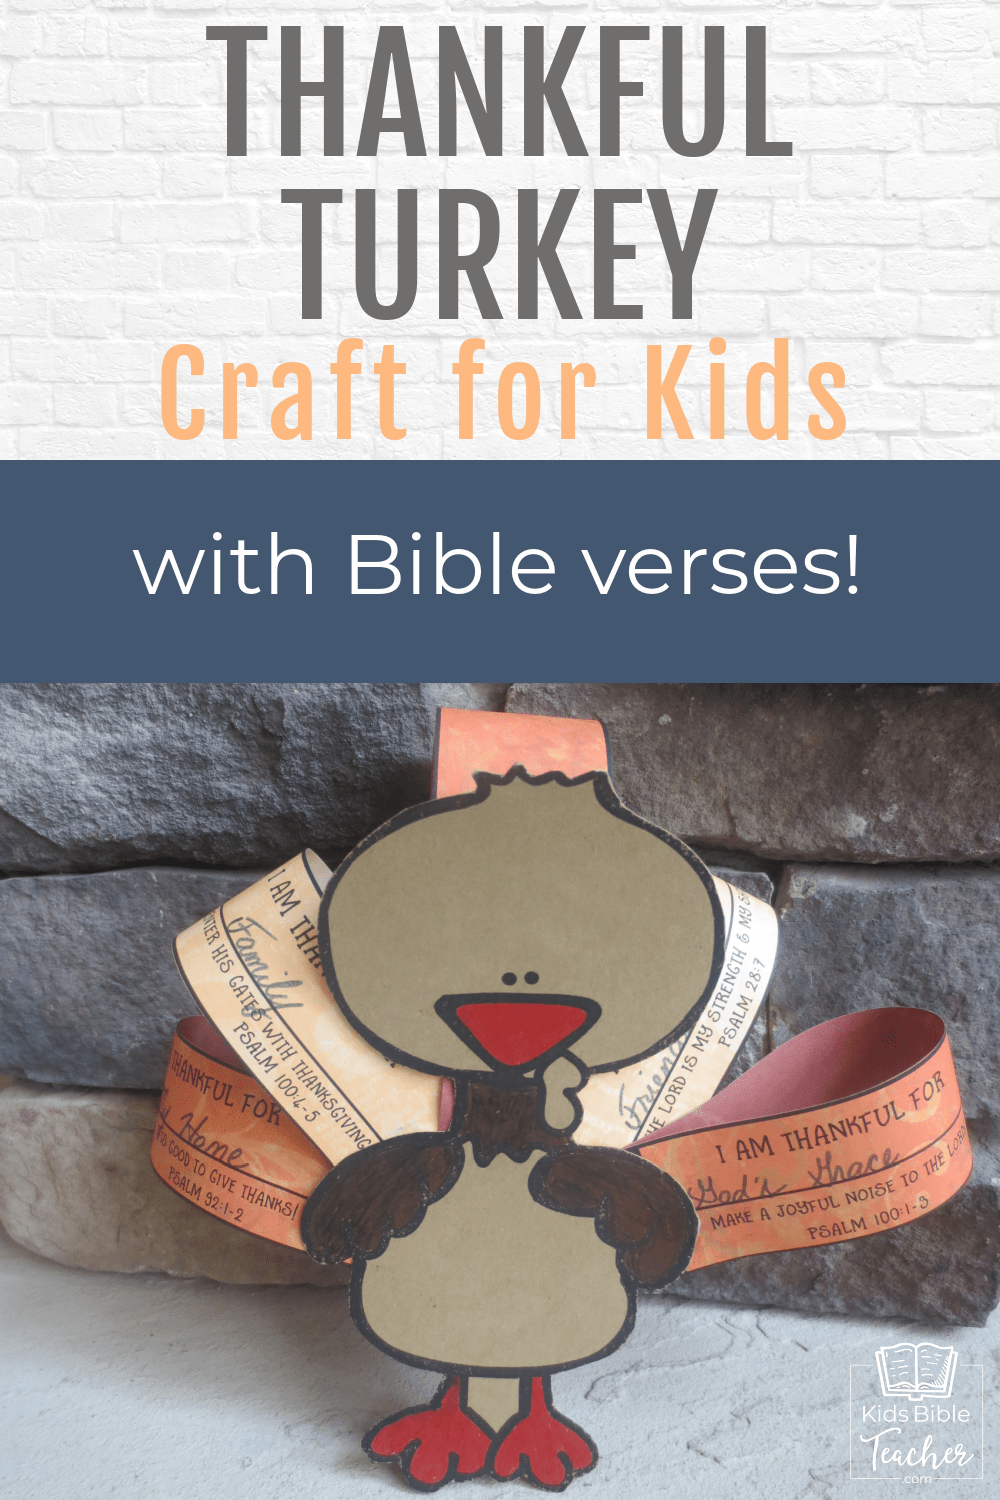 Encourage your kids to give thanks to God this Thanksgiving - with this friendly Thankful Turkey craft. Thanksgiving Crafts for Kids.